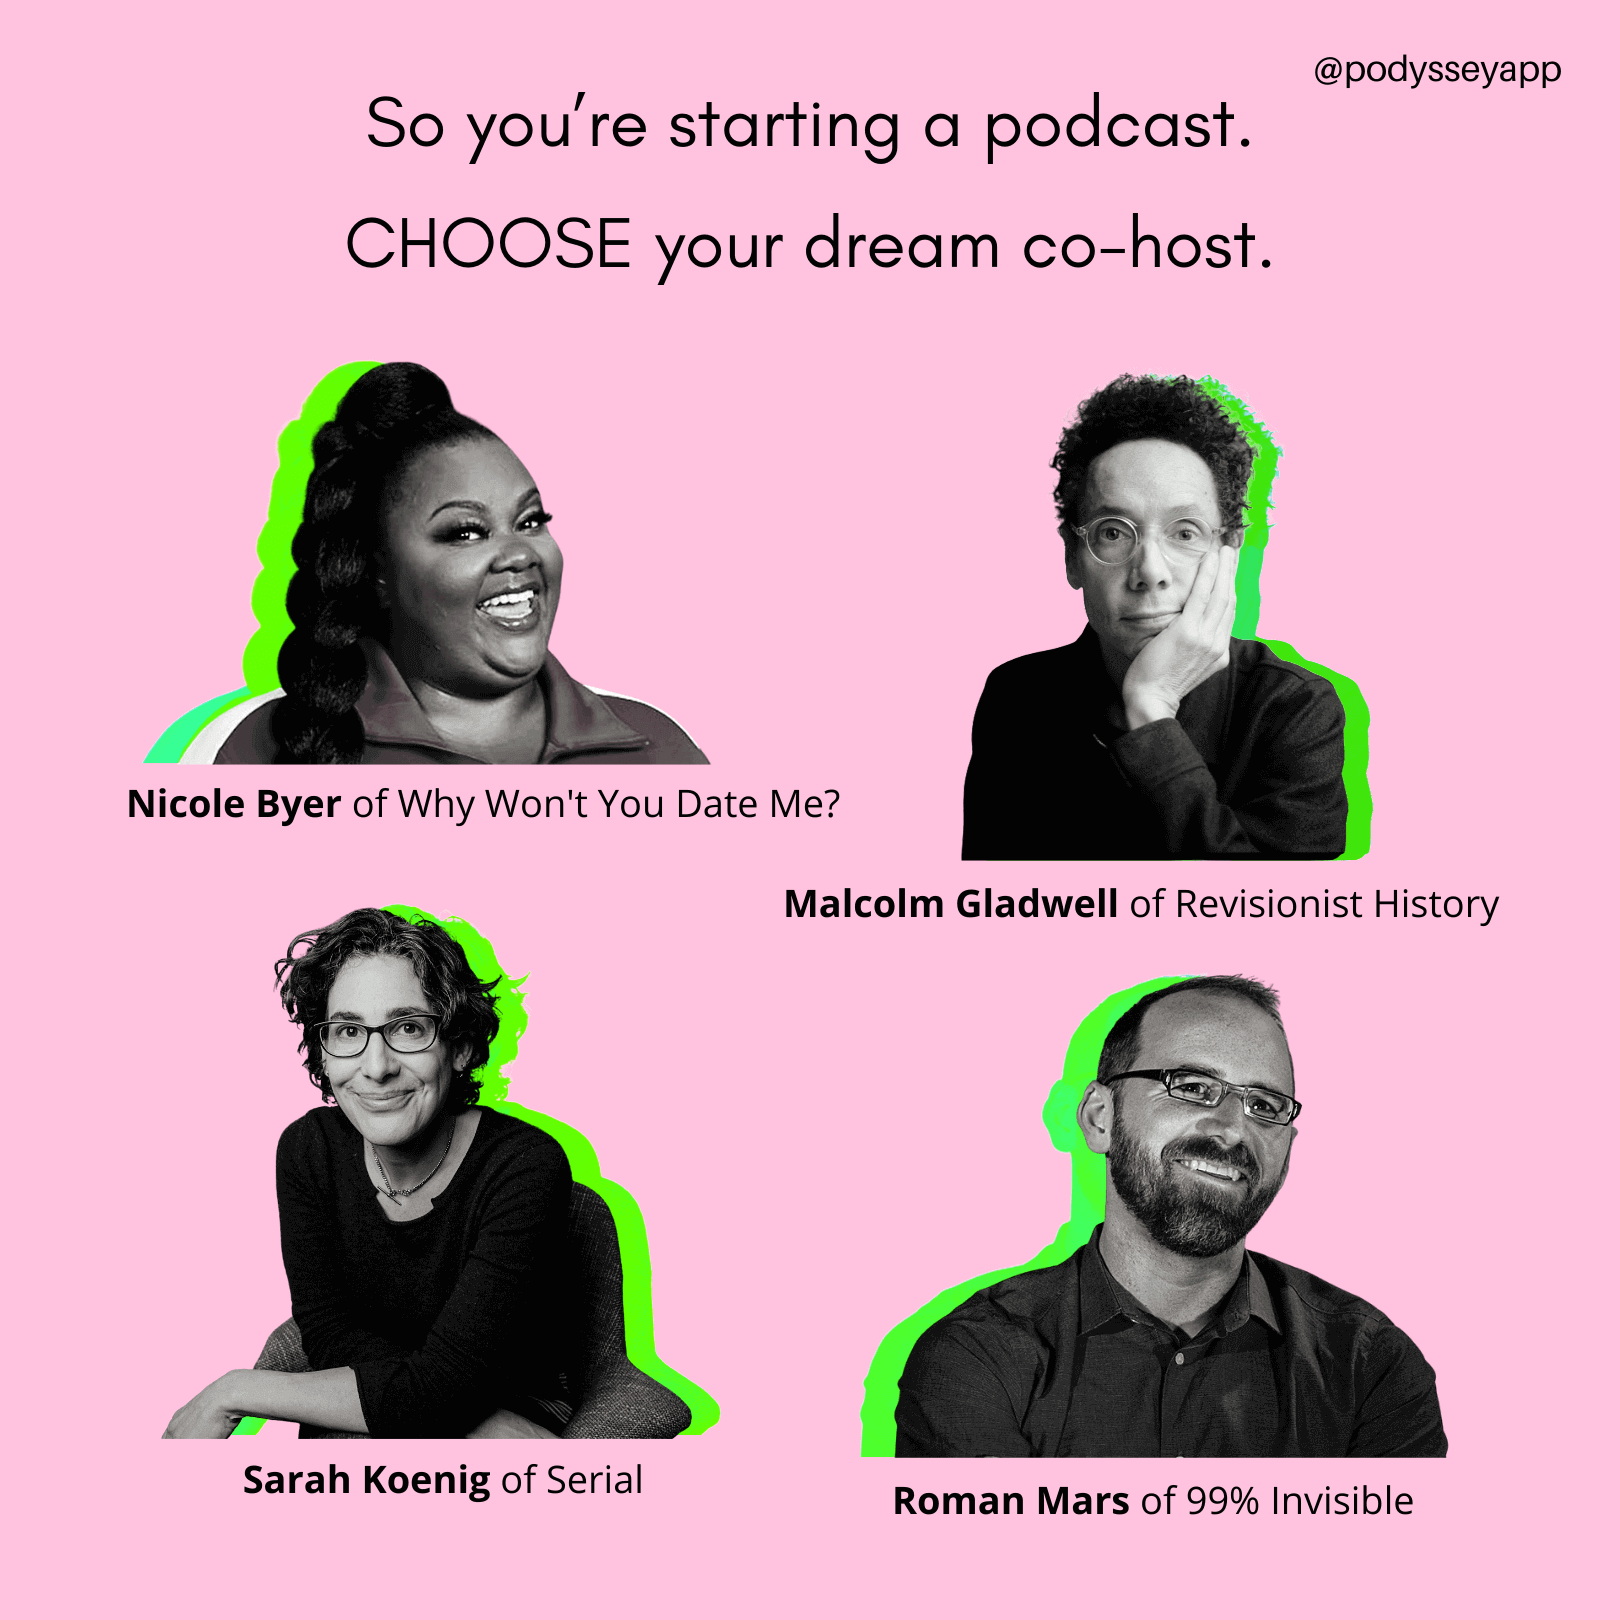 Choose your dream podcast co-host